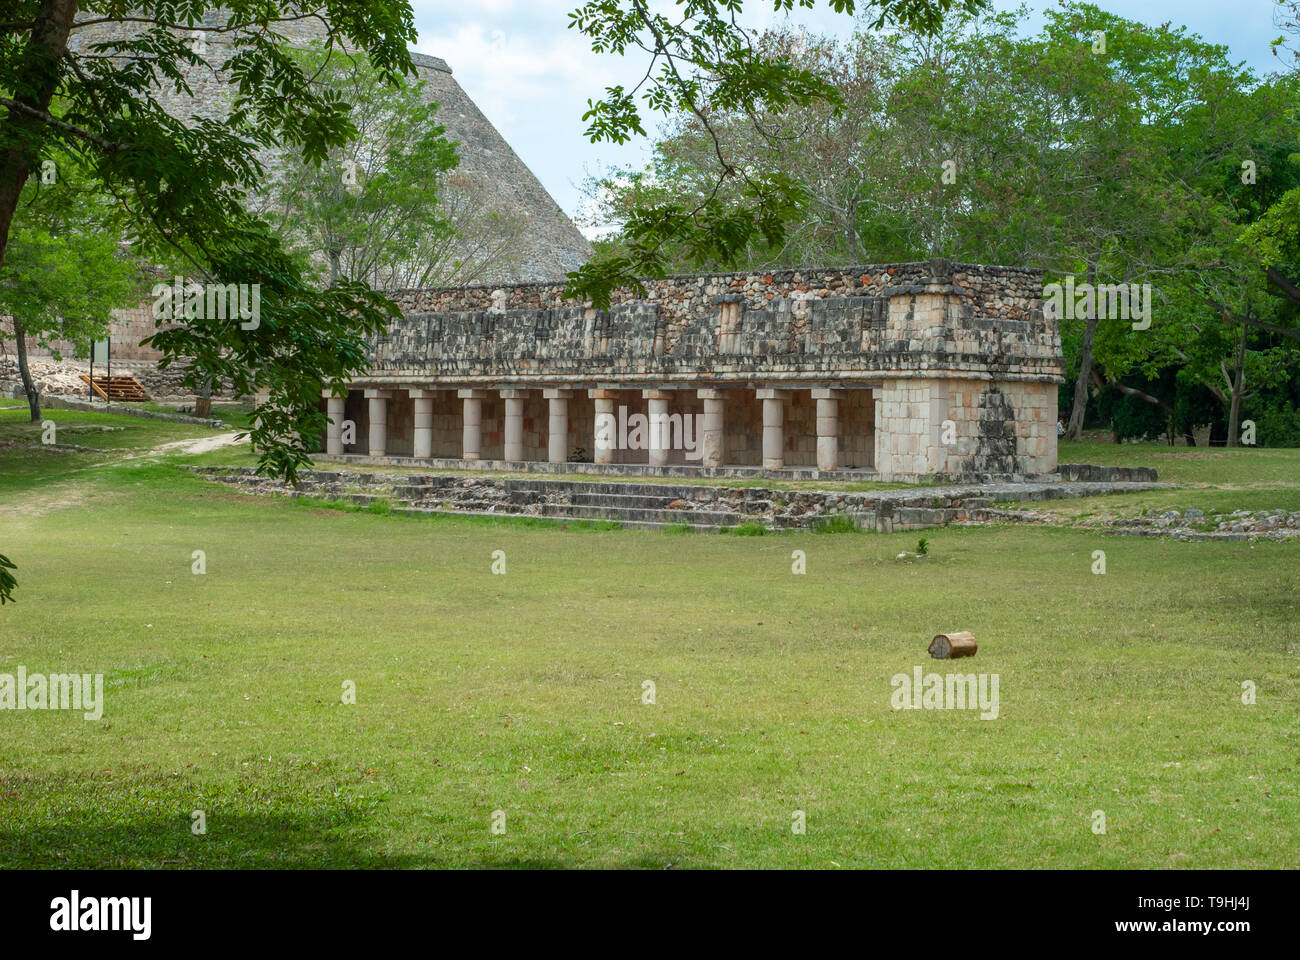 Mayan temple, with many columns, in the archaeological area of Ek Balam, in the Yucatan peninsula - Stock Image